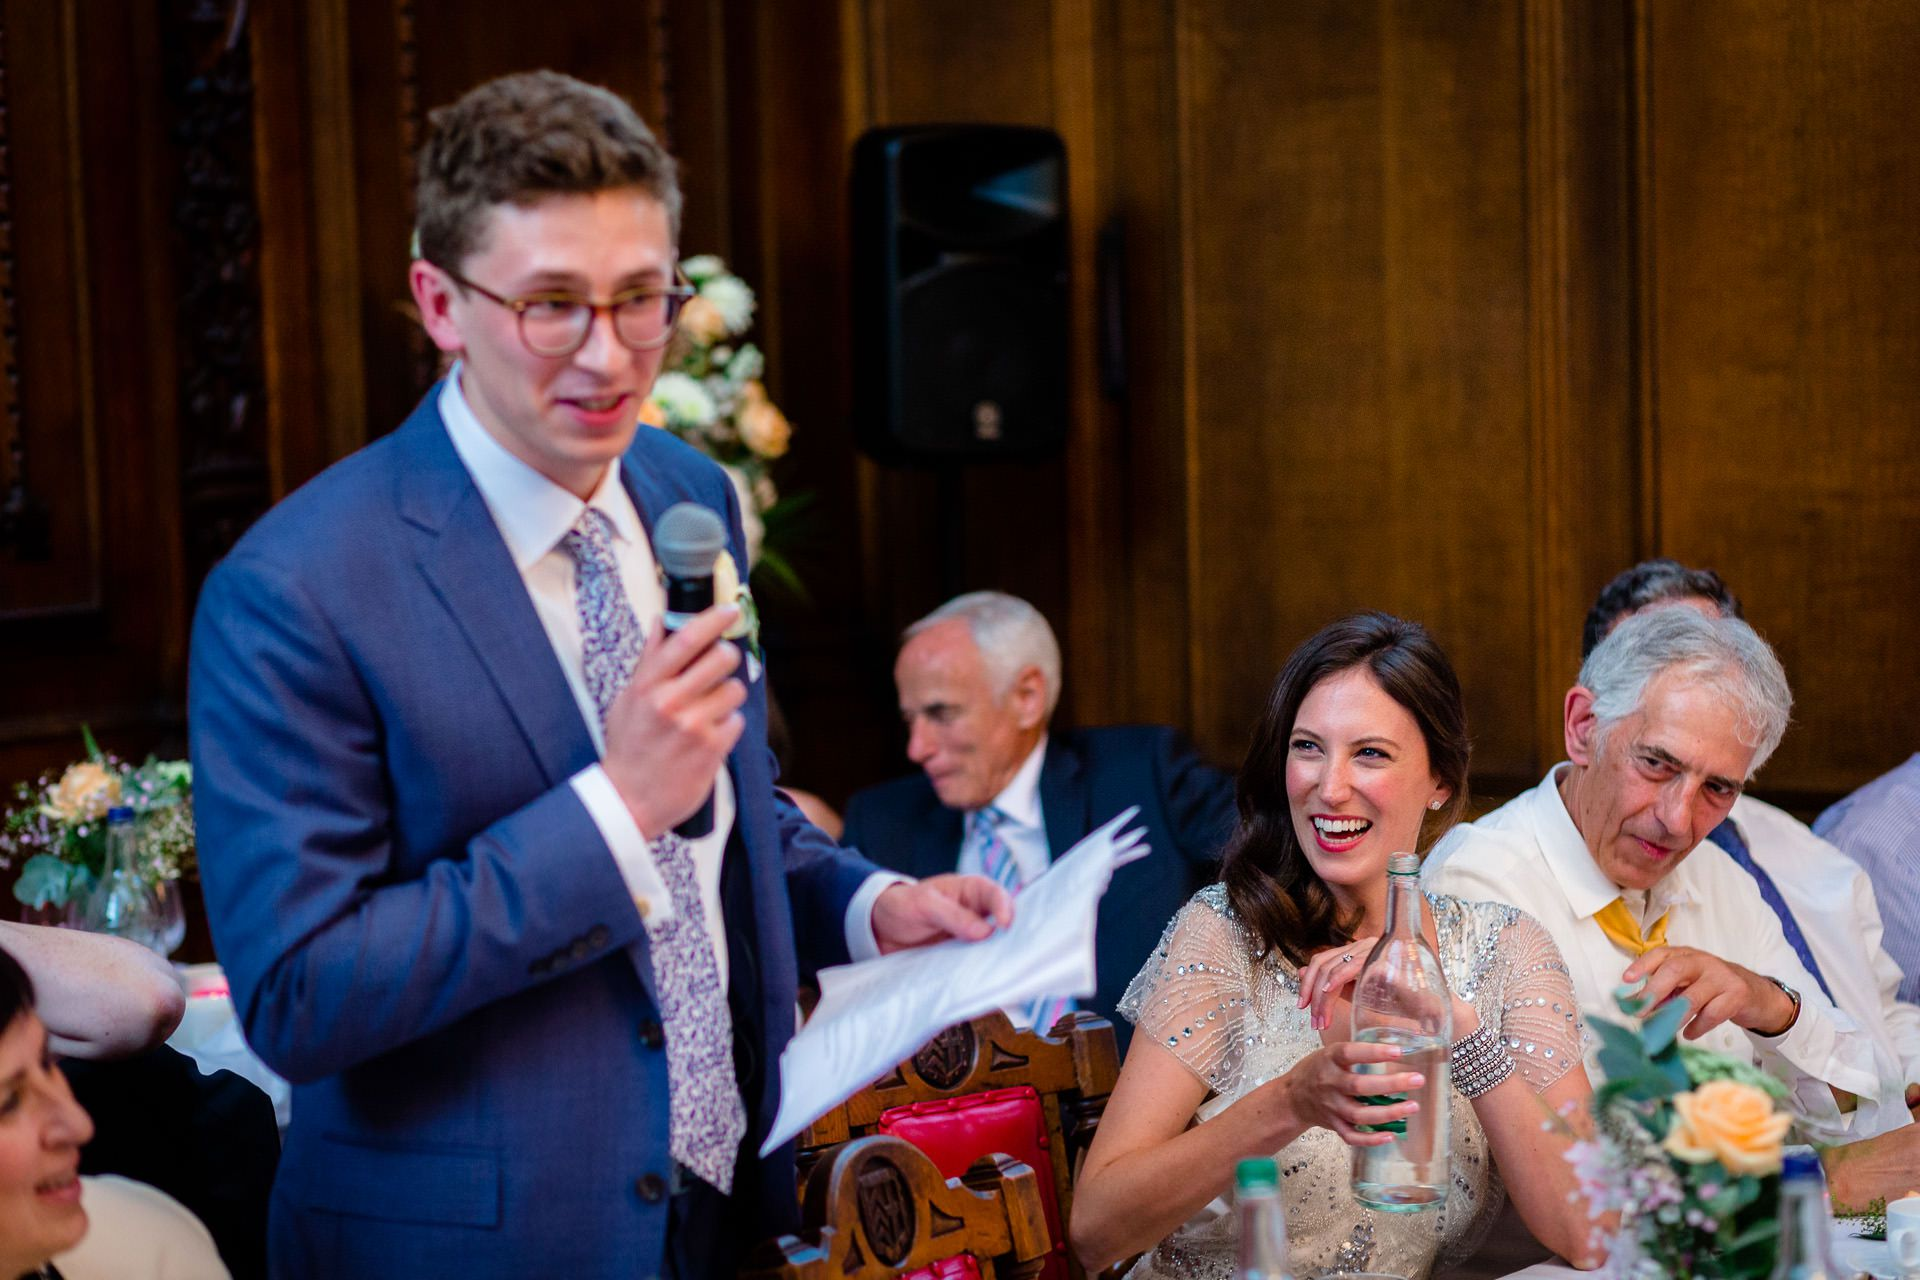 another speach on the wedding